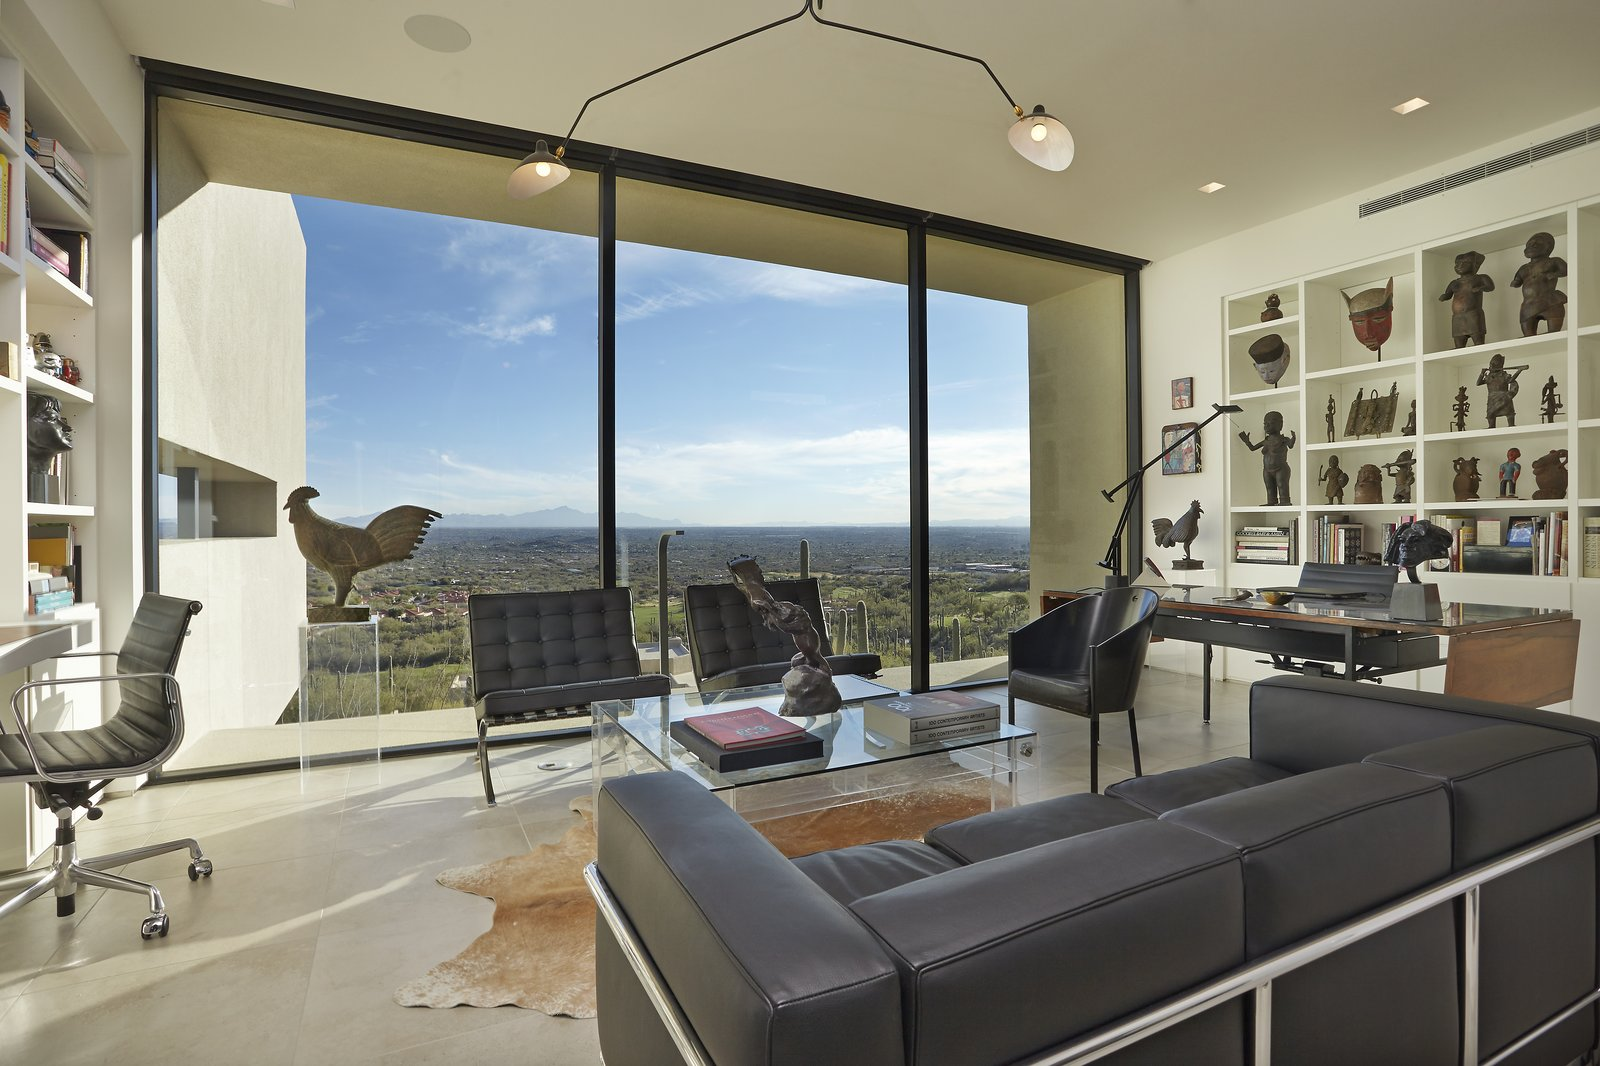 Office, Bookcase, Chair, Storage, Shelves, Desk, Study Room Type, Den Room Type, Limestone Floor, Lamps, and Library Room Type  Sabino Canyon Home by Kevin B Howard Architects